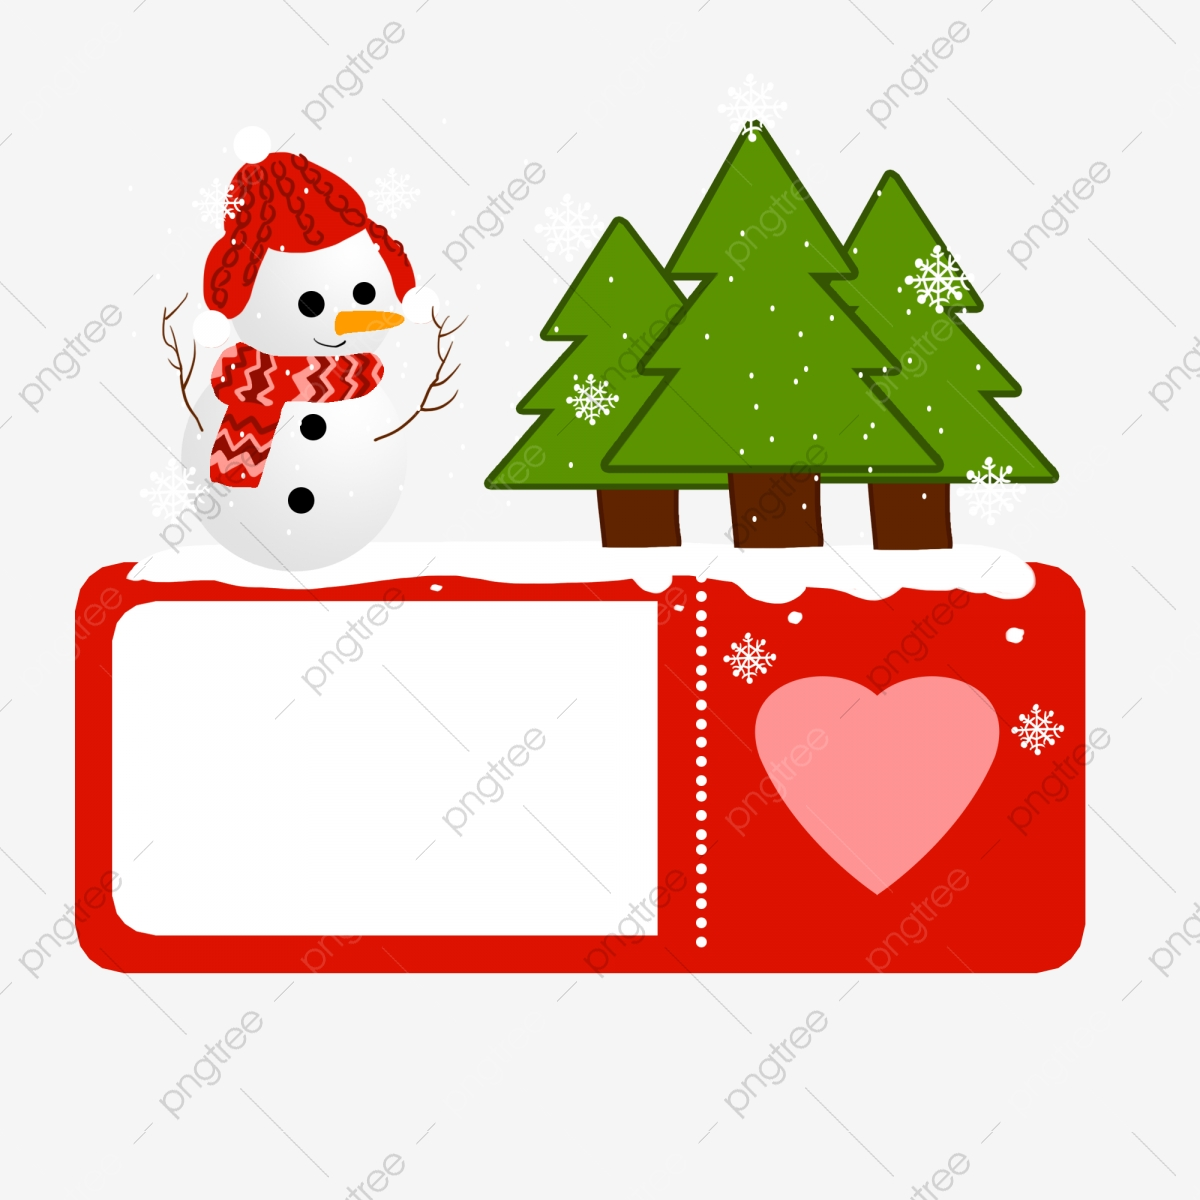 new year christmas tree border beautiful christmas tree border cartoon christmas tree border green christmas tree white snowman decoration png transparent clipart image and psd file for free download pngtree